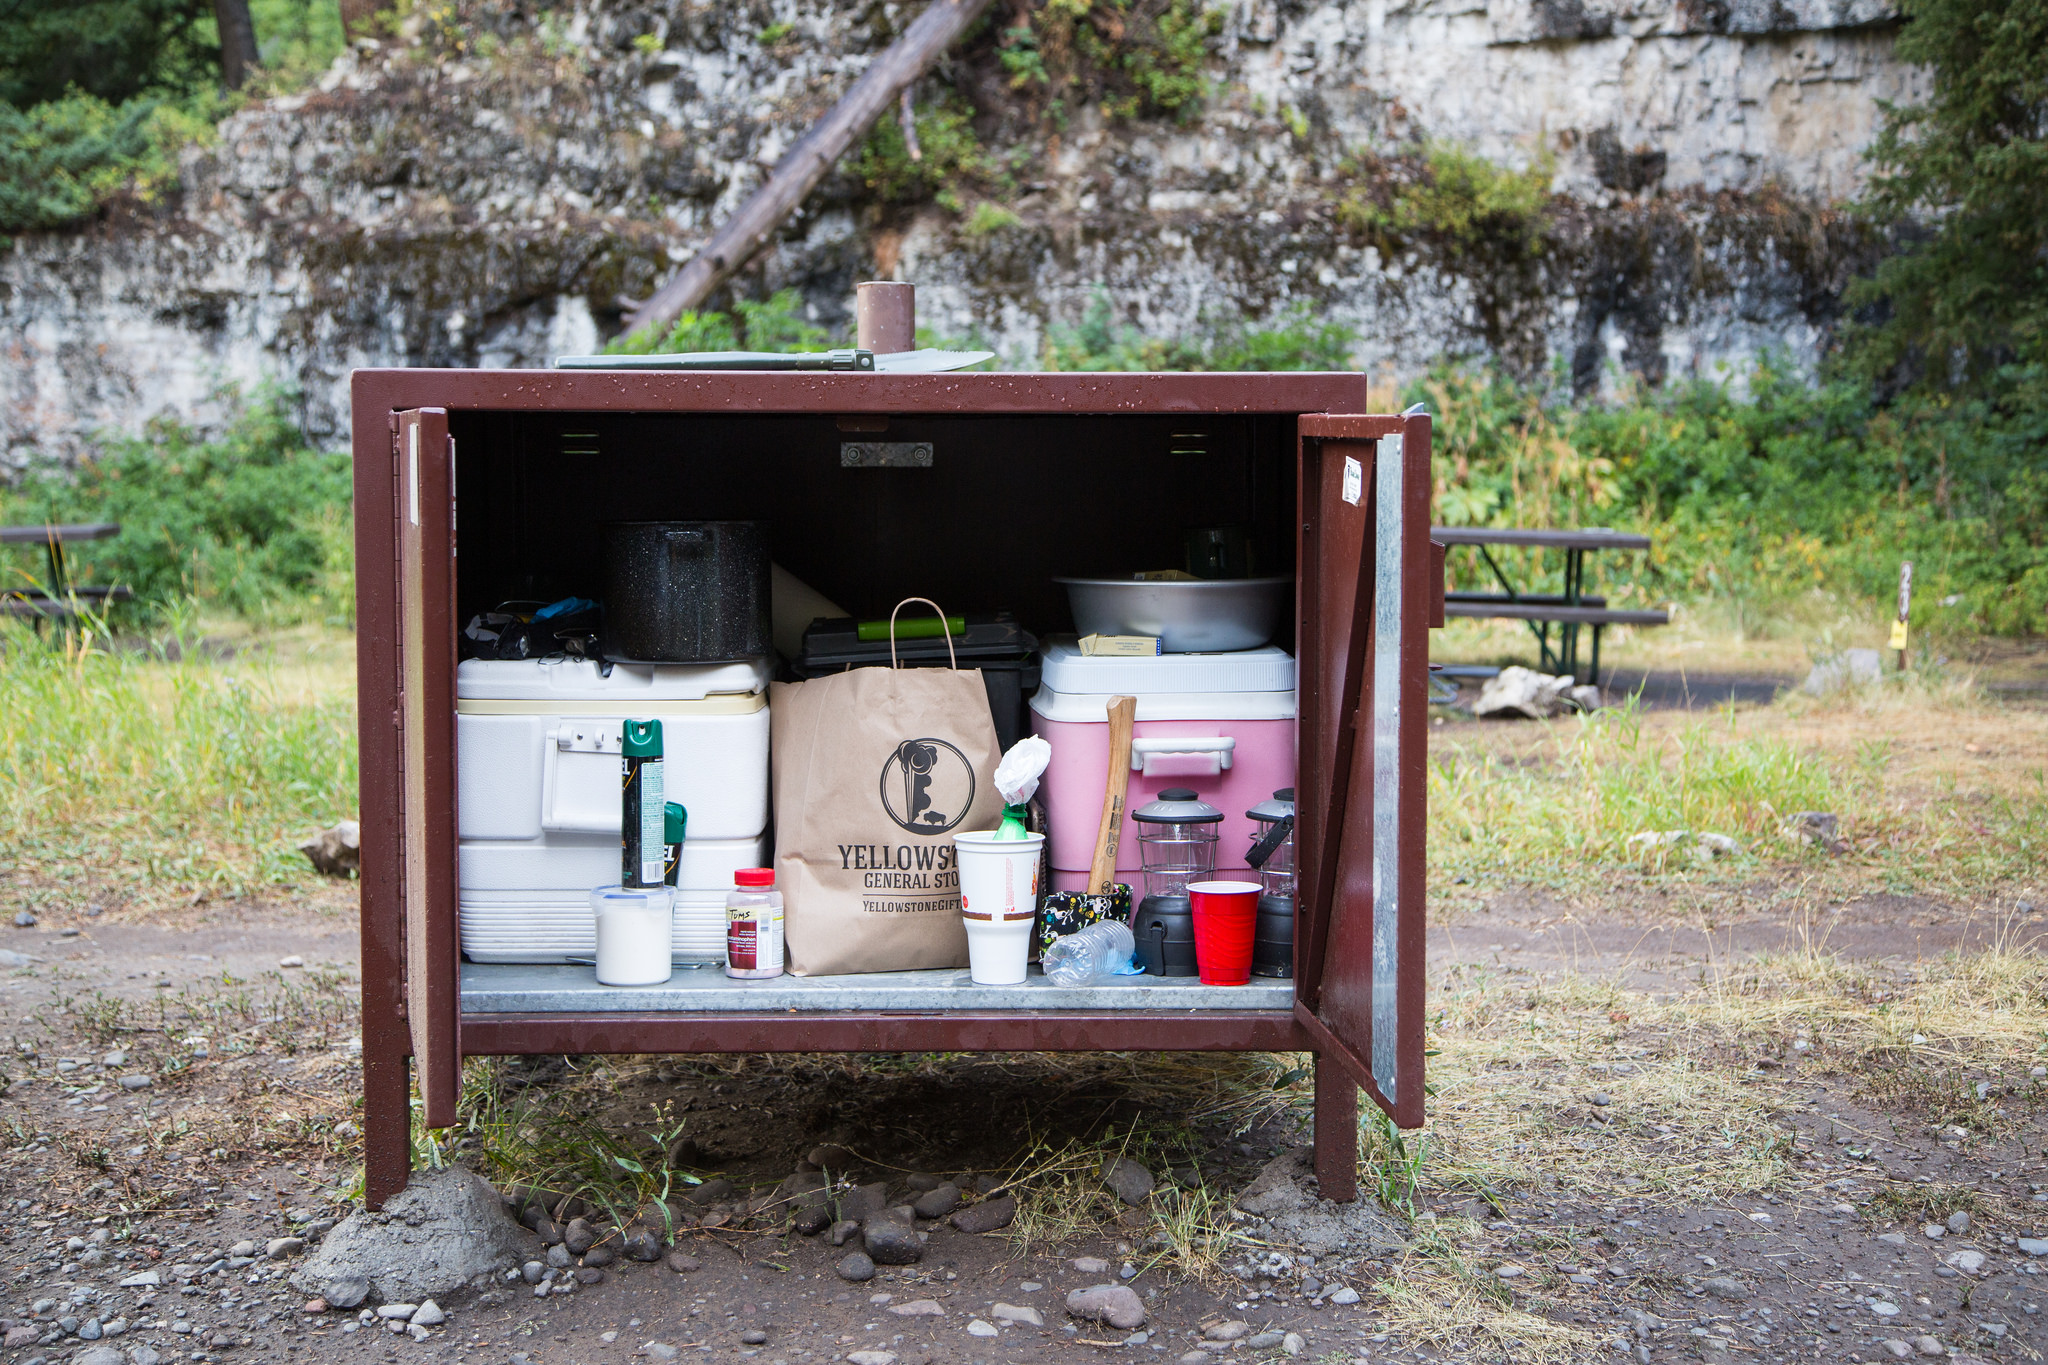 CampingBearBox NPS